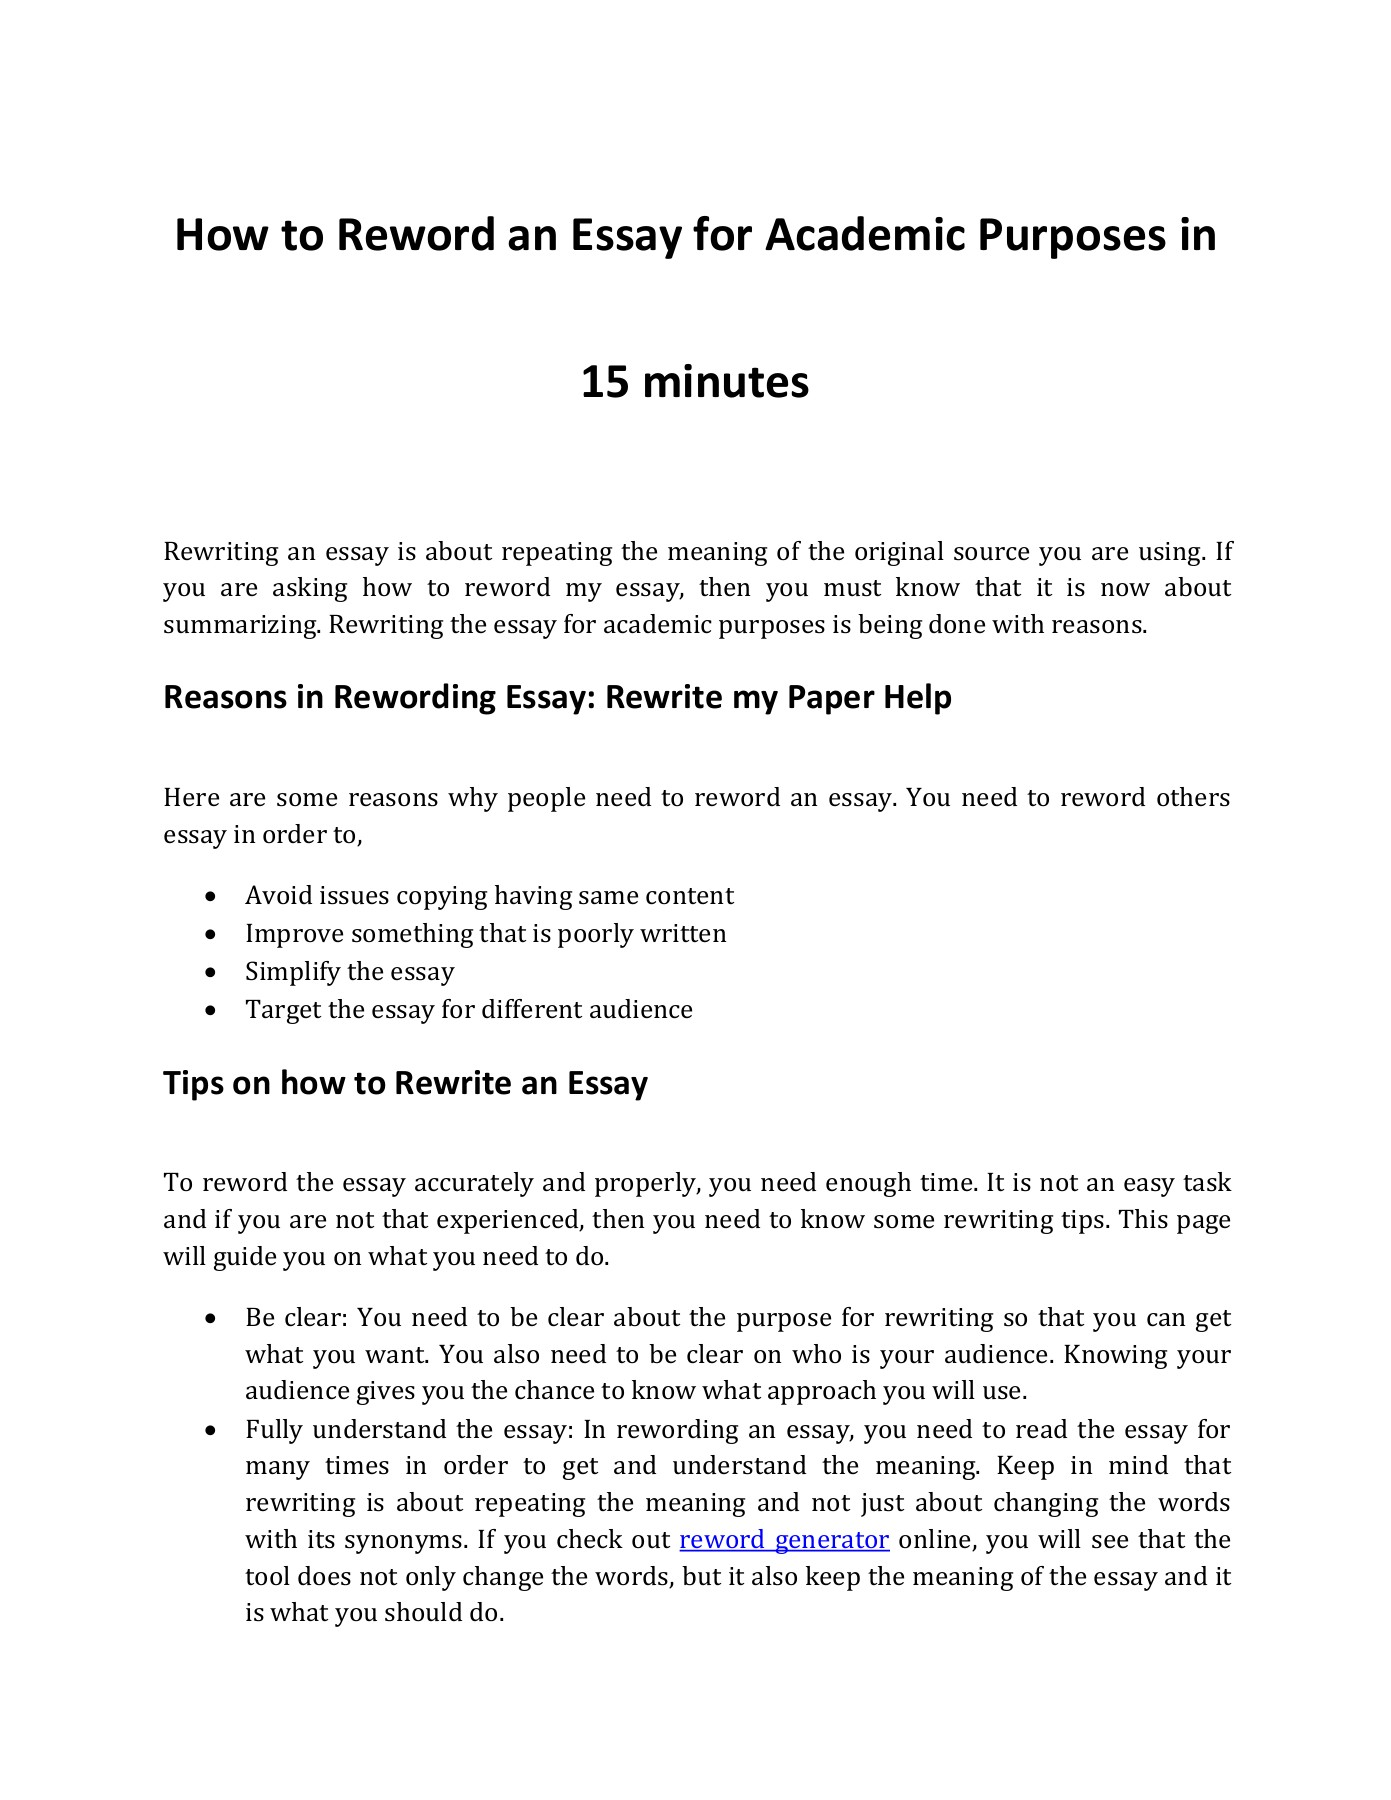 Help Reword My Essay How To Do It In 15 Minutes Pages 1 3